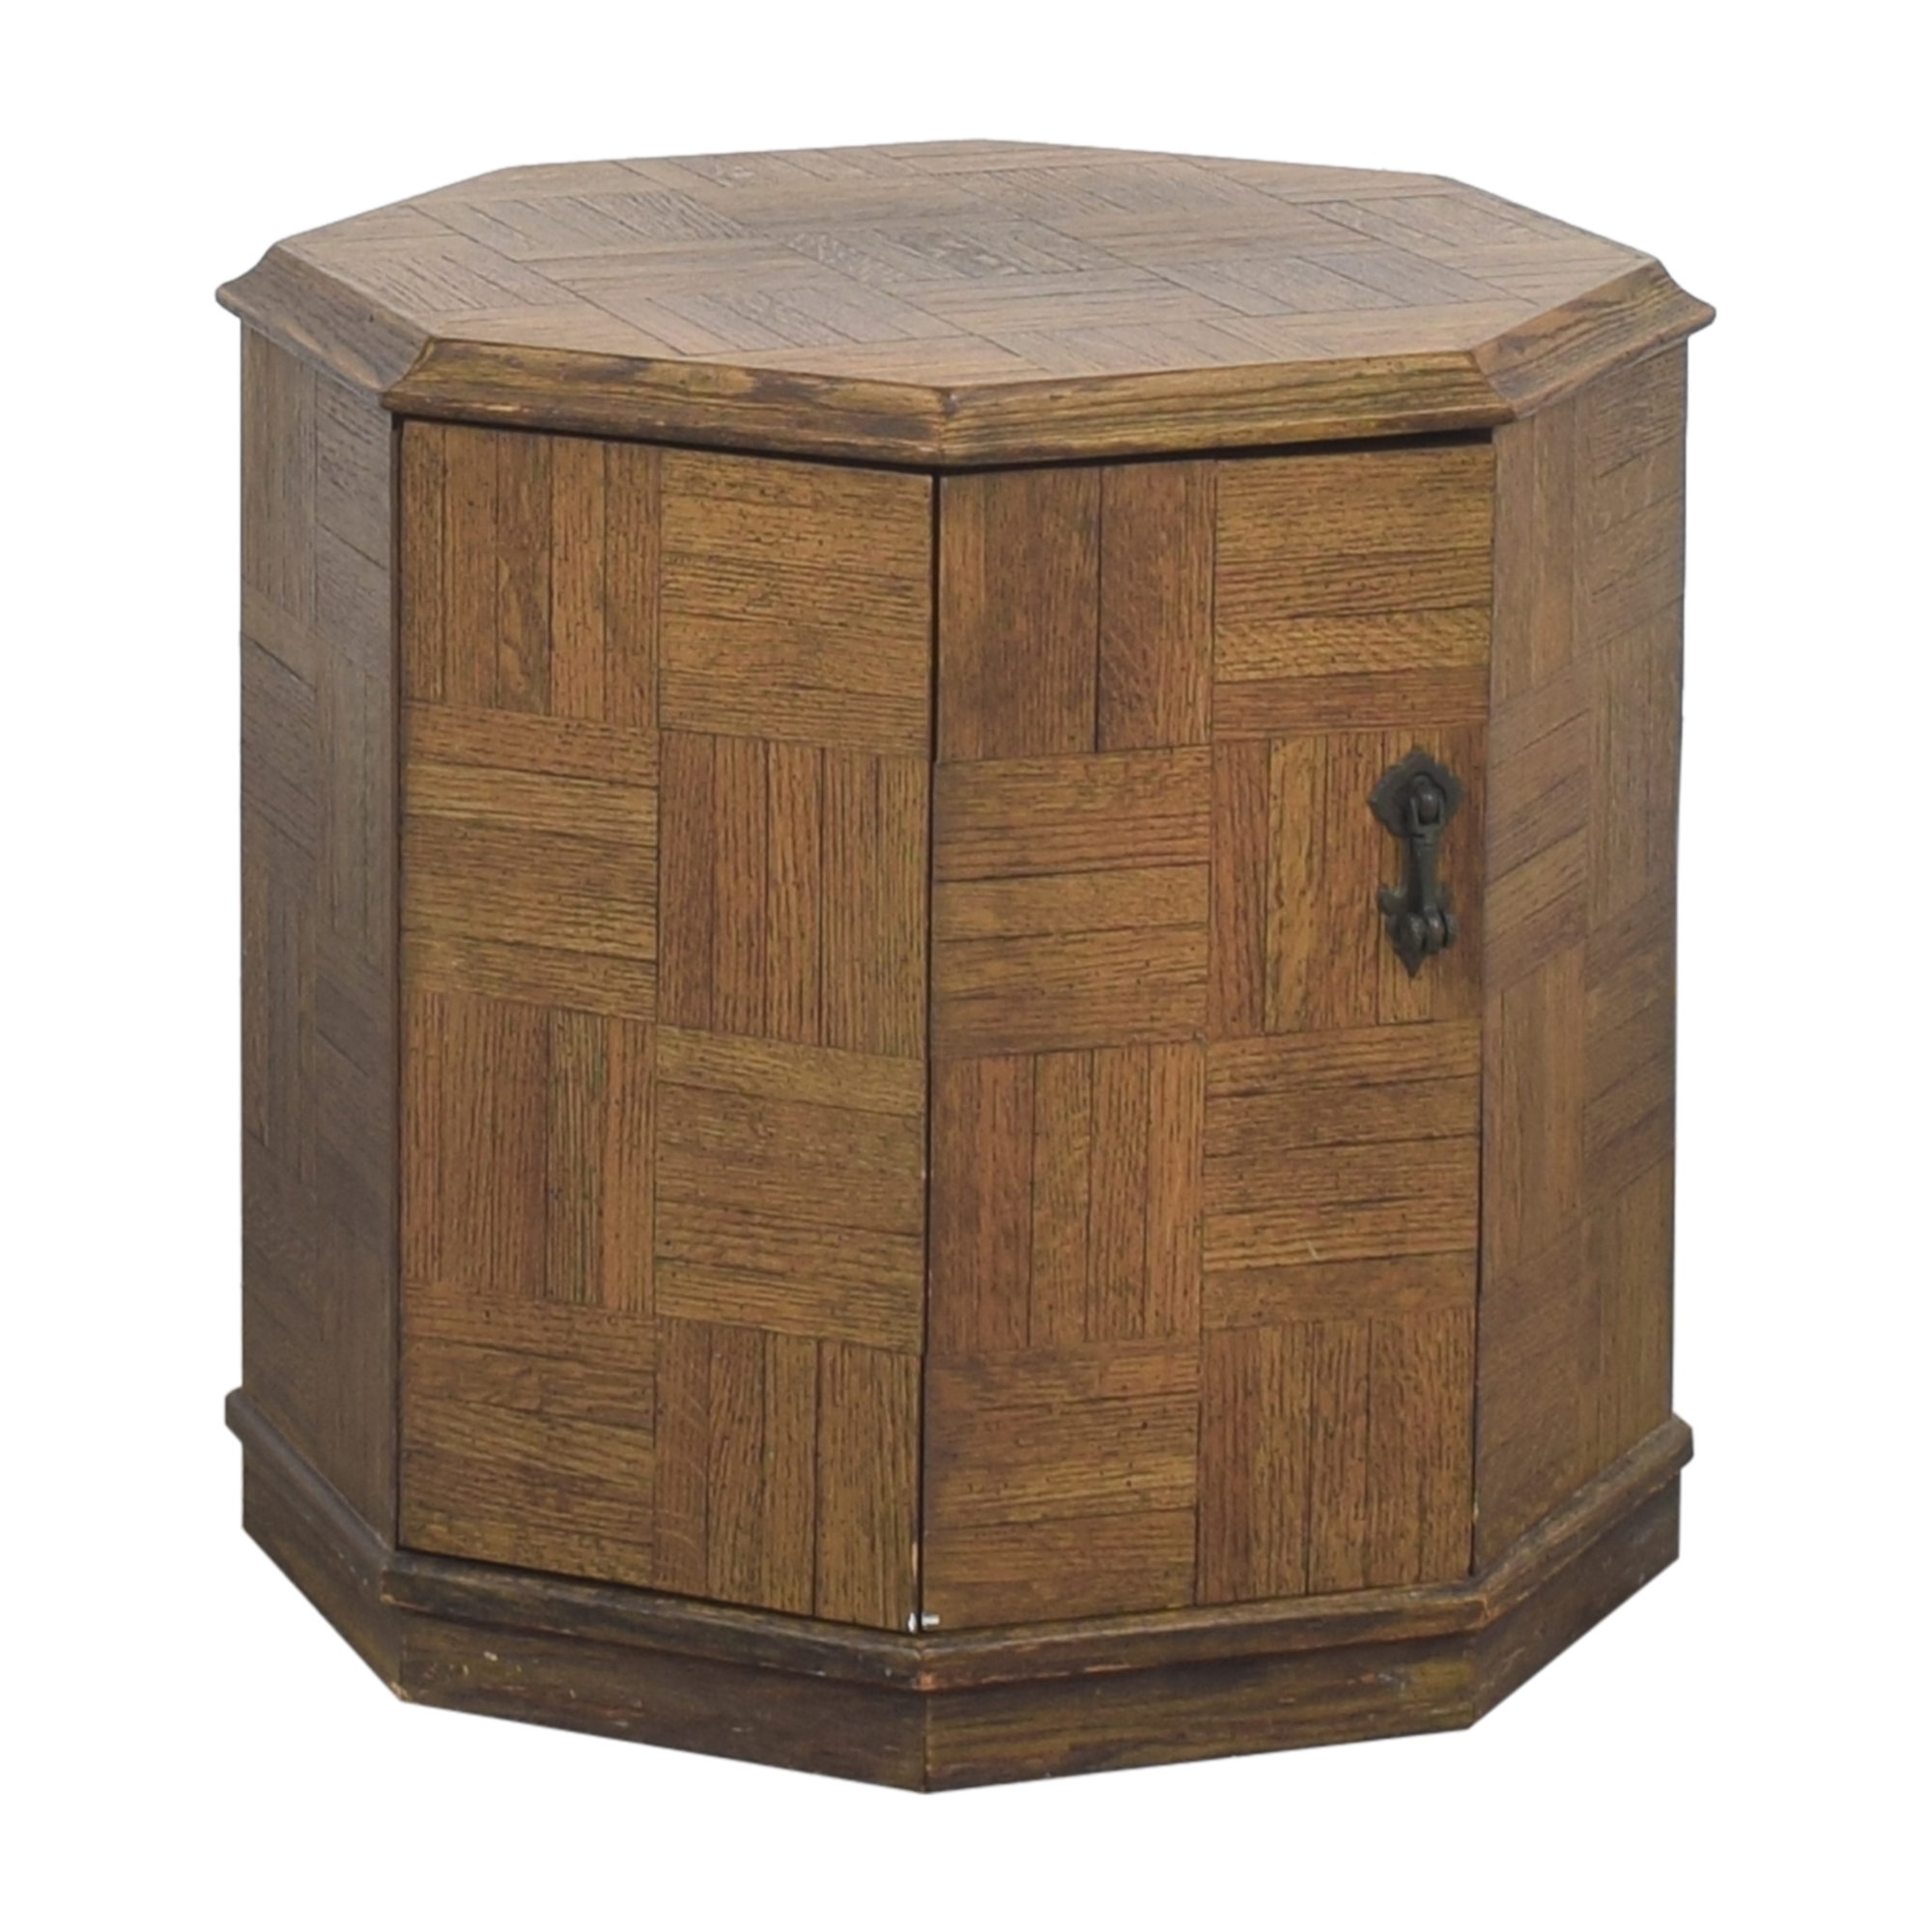 Octagonal Storage End Table used